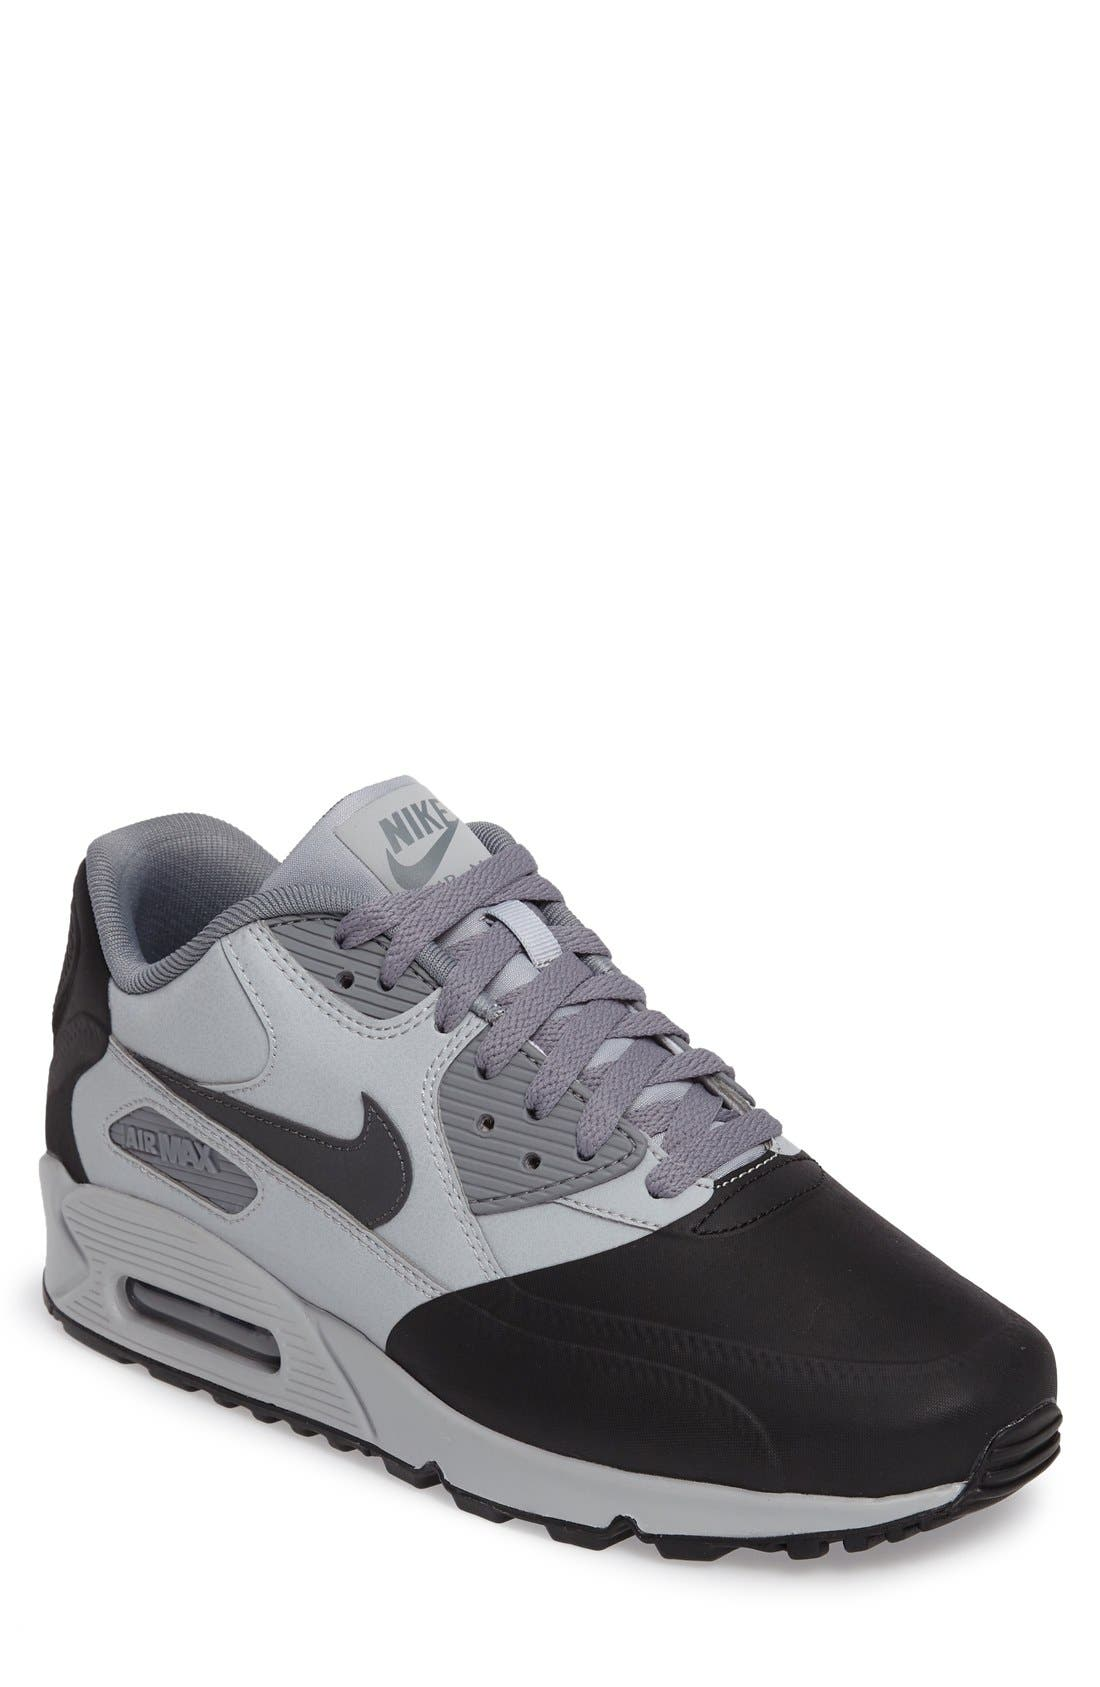 Air Max 90 Premium Sneaker,                             Main thumbnail 3, color,